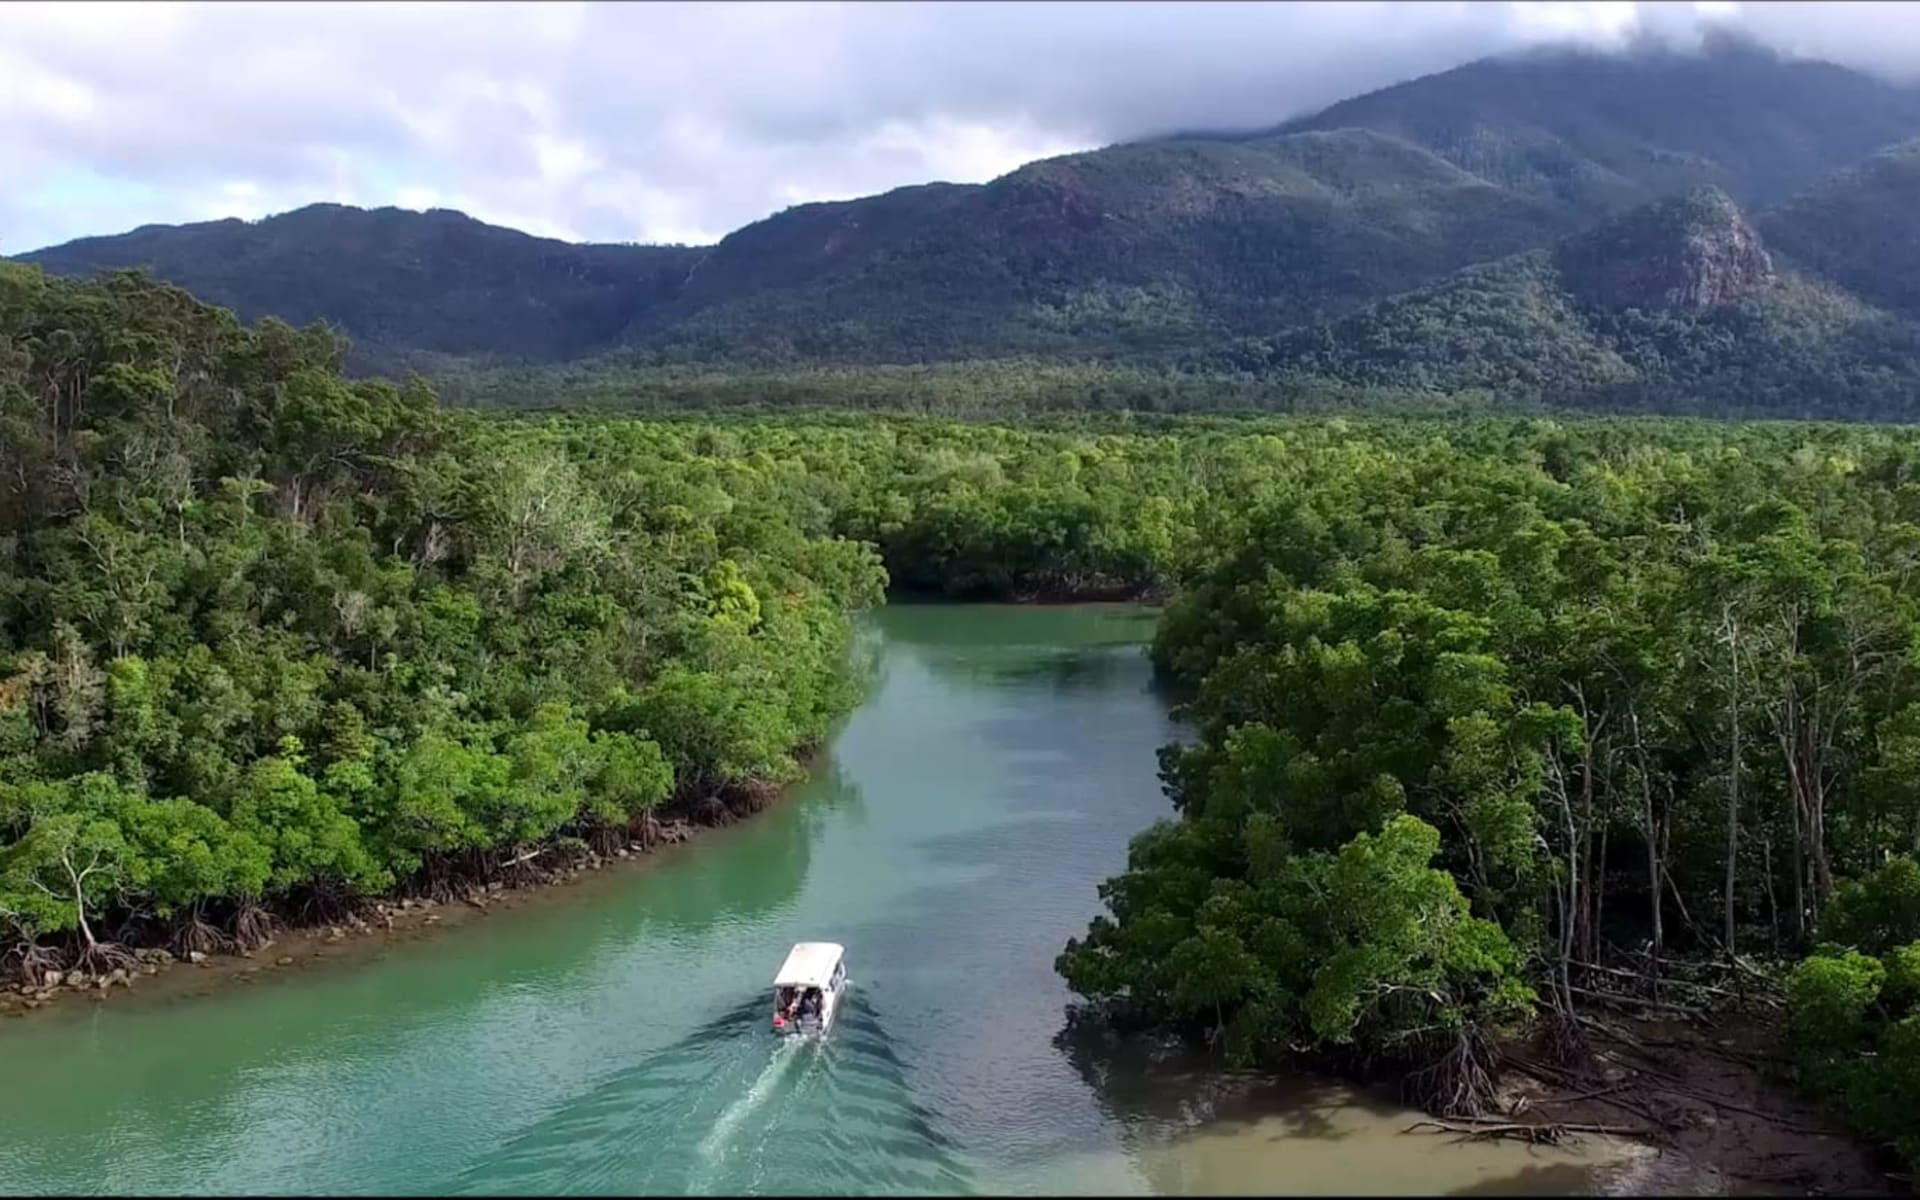 Coral Expeditions / nördliches Barrier Reef ab Cairns: Australia - Queensland - Coral Expeditions Rainforest Tour